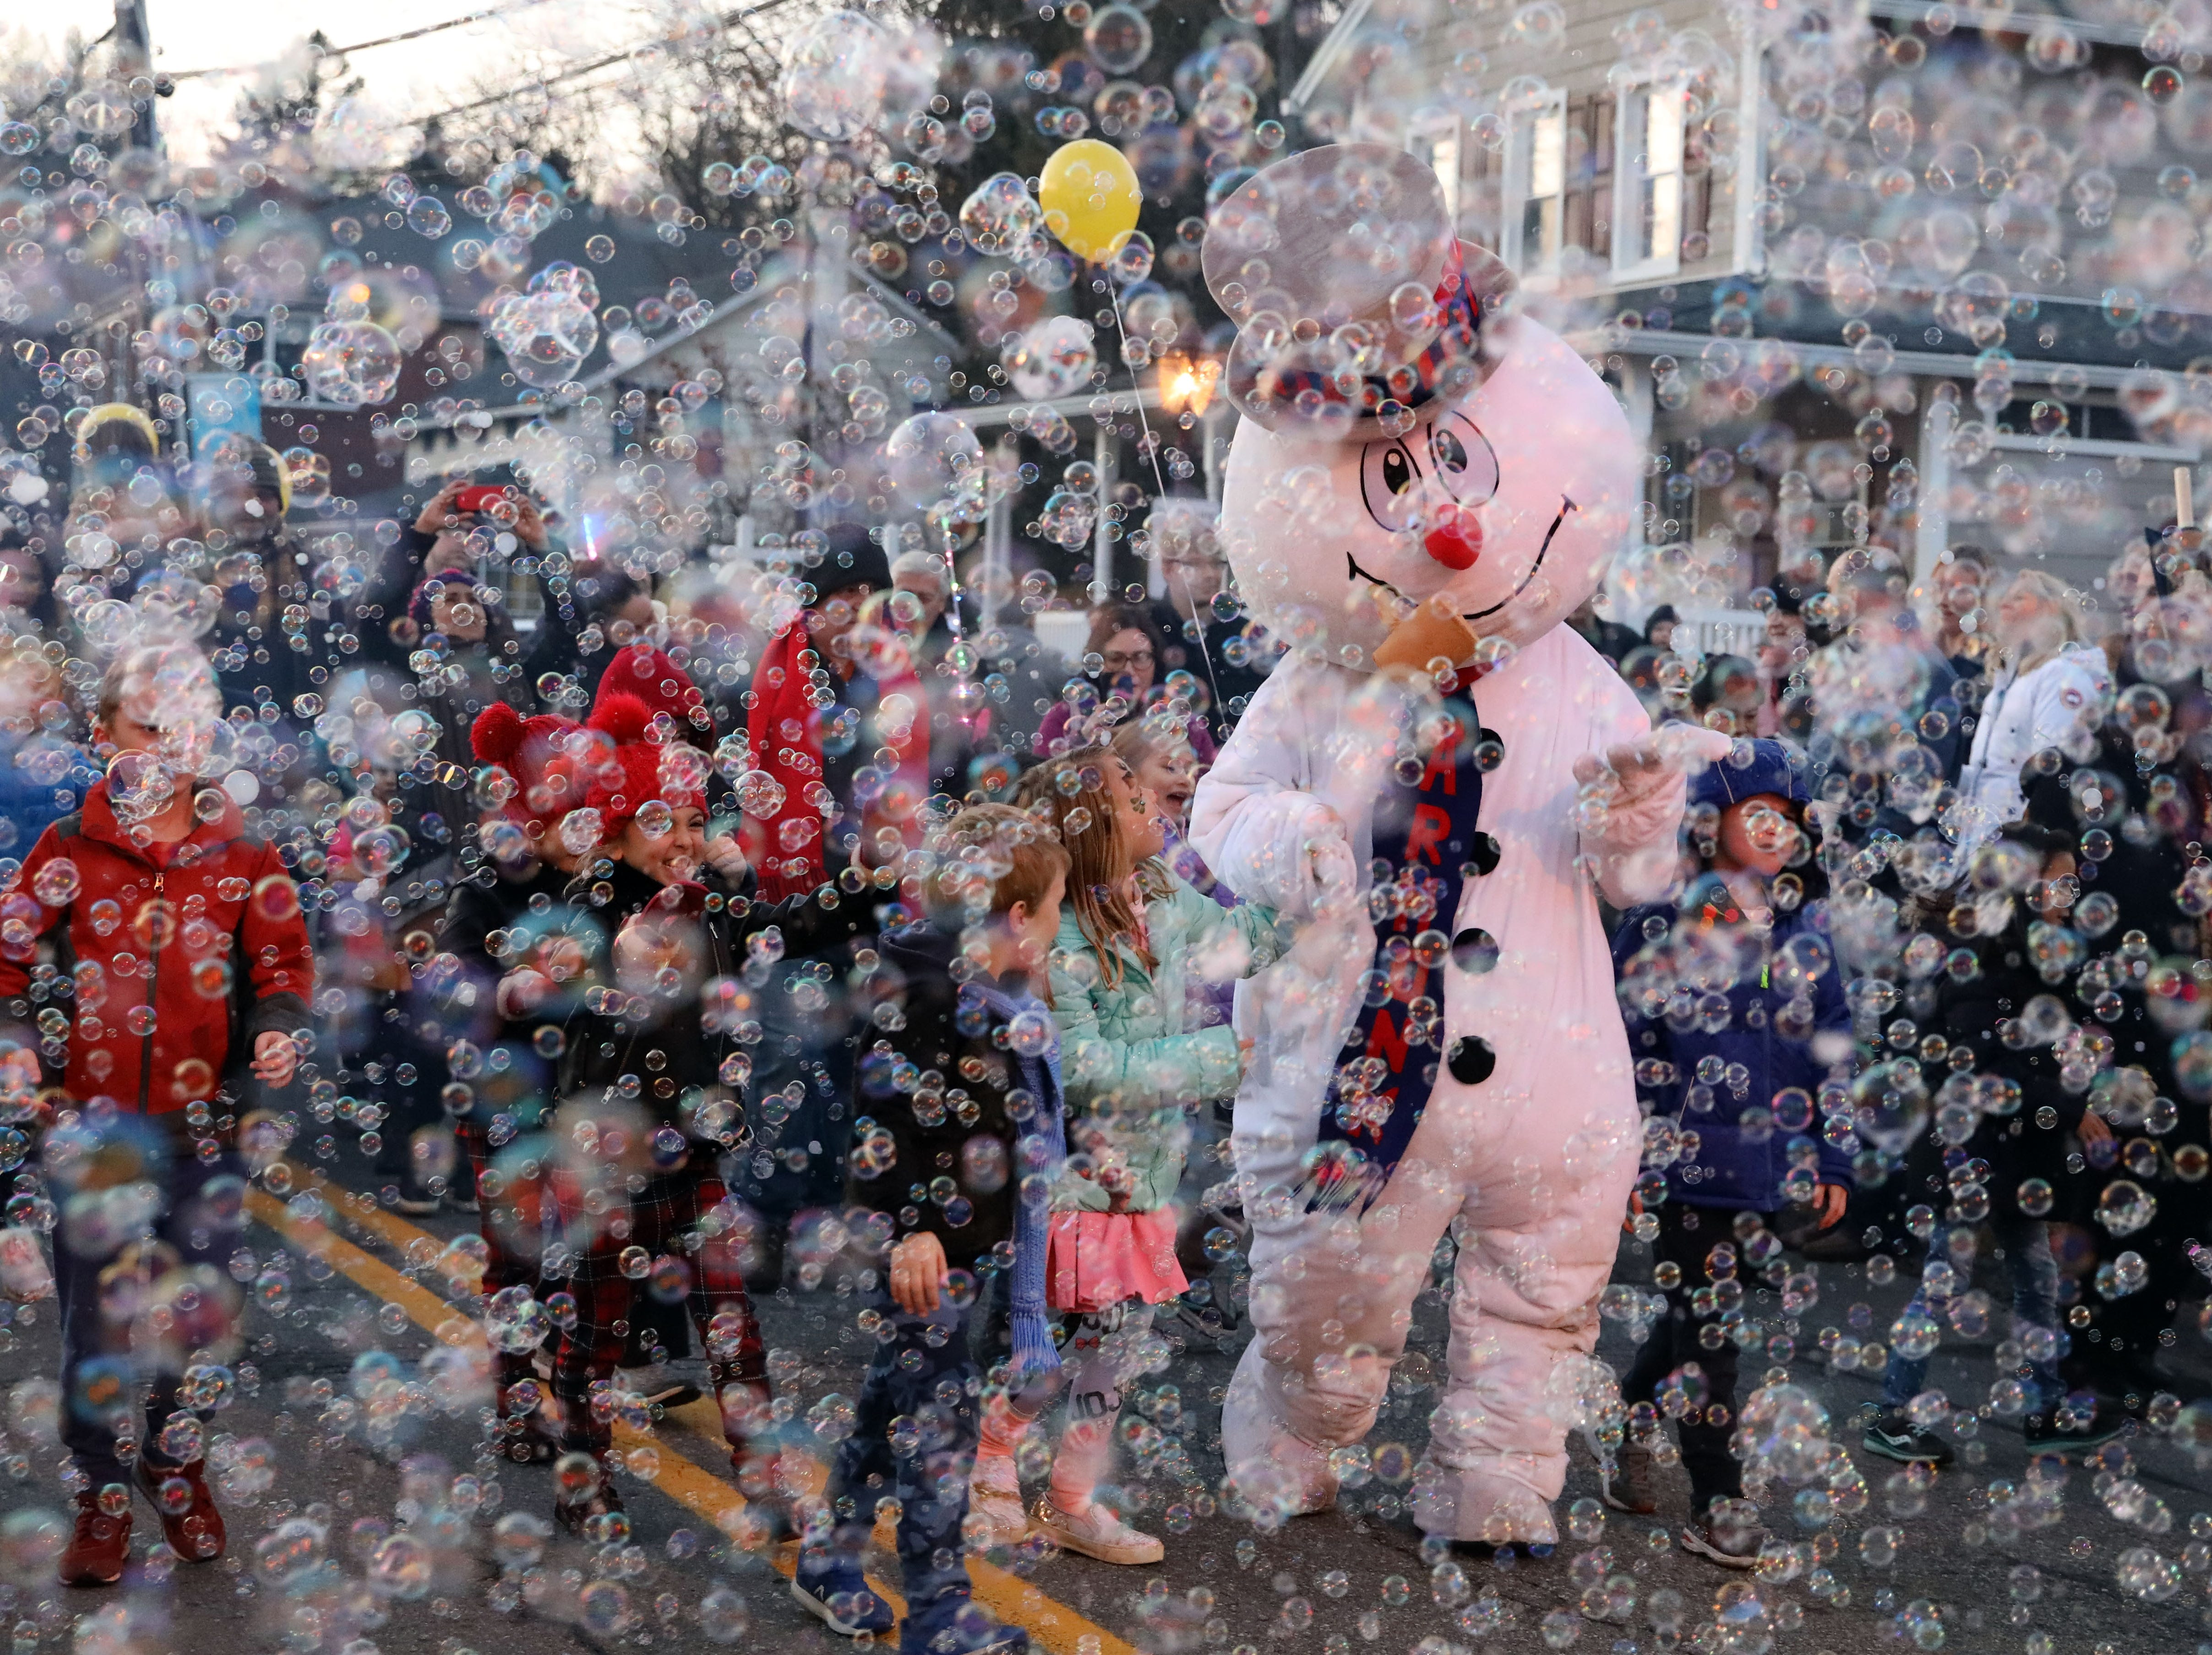 """Frosty the Snowman marches in the 9th annual Frosty Day parade in Armonk Nov. 25, 2018. Steve Nelson wrote the song """"Frosty the Snowman"""" in 1953 when he lived in Armonk."""